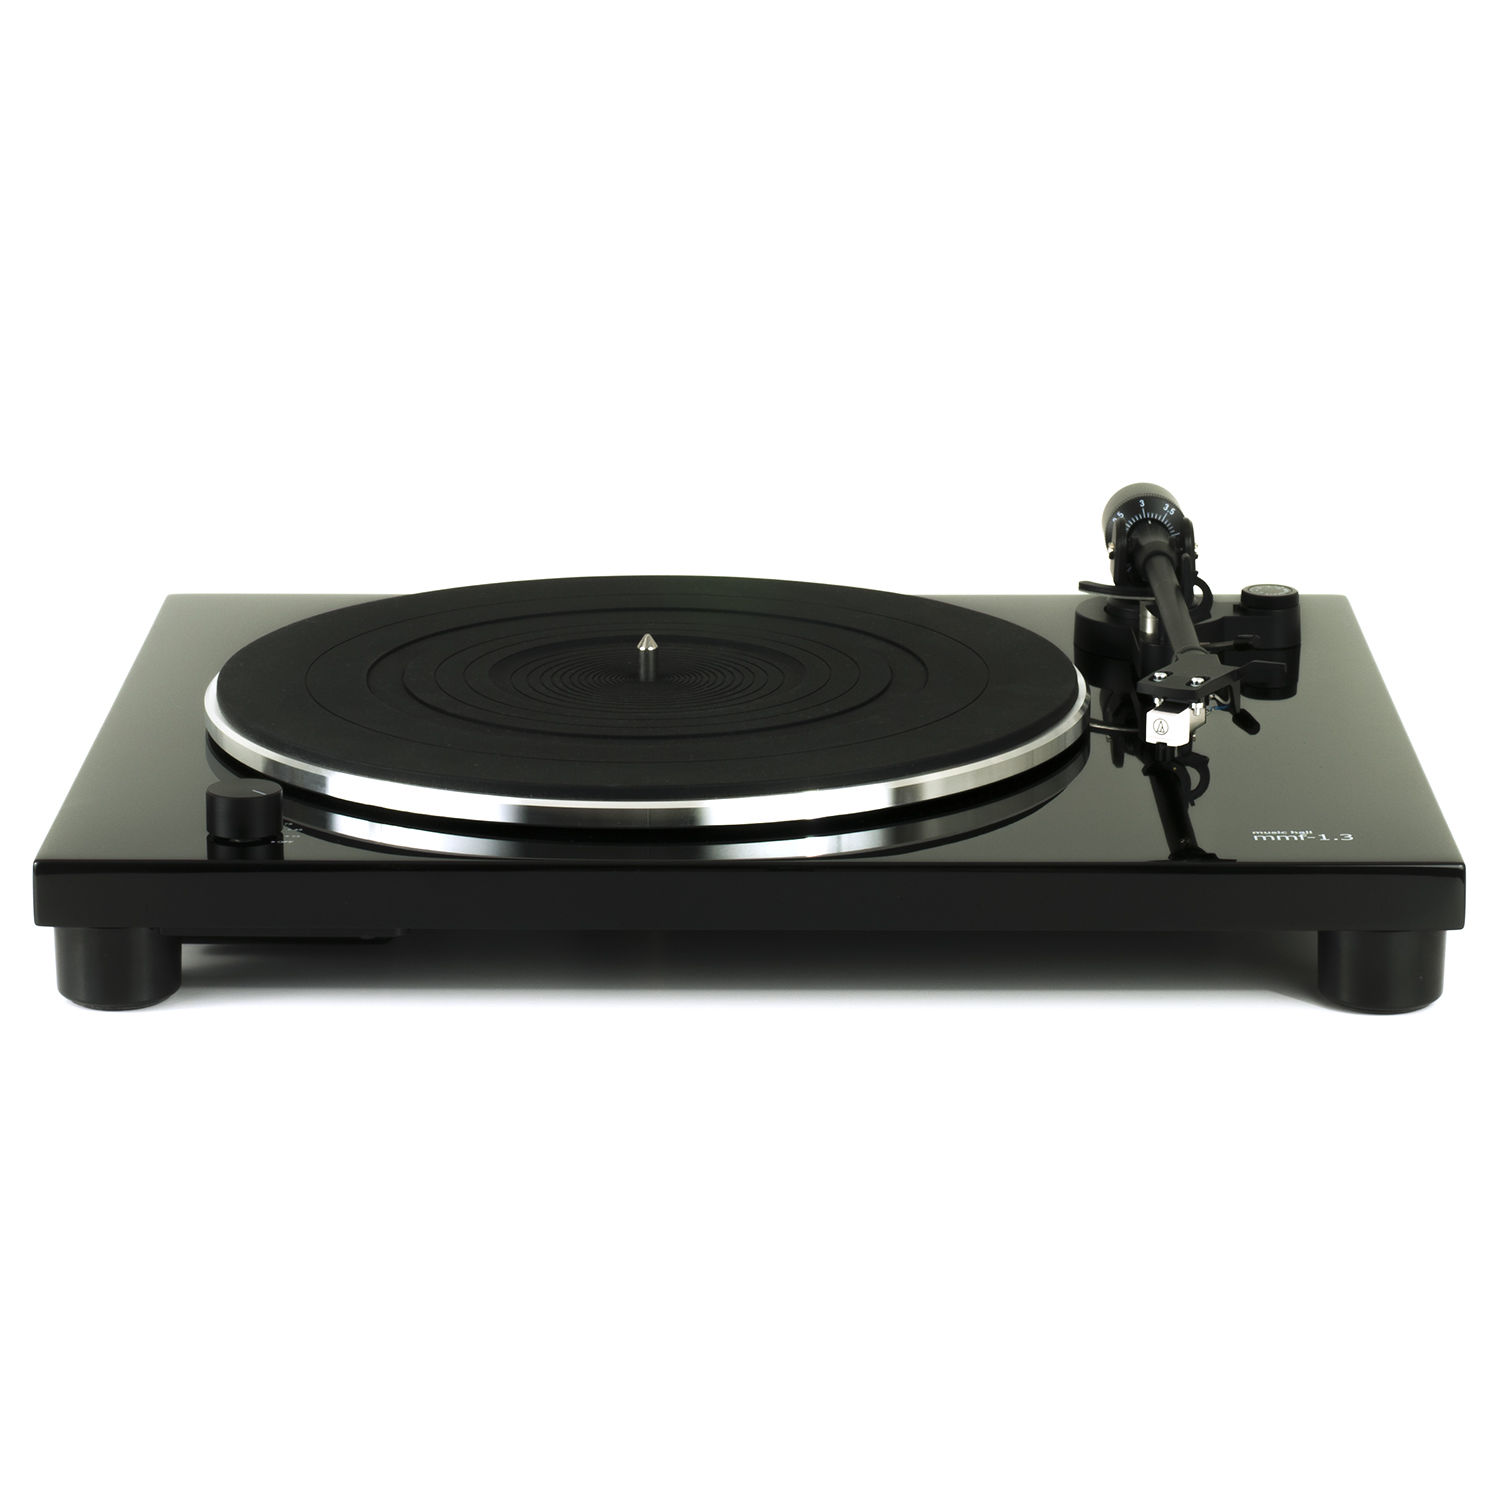 music hall mmf 1 3 stereo turntable mmf 1 3 b h photo video. Black Bedroom Furniture Sets. Home Design Ideas